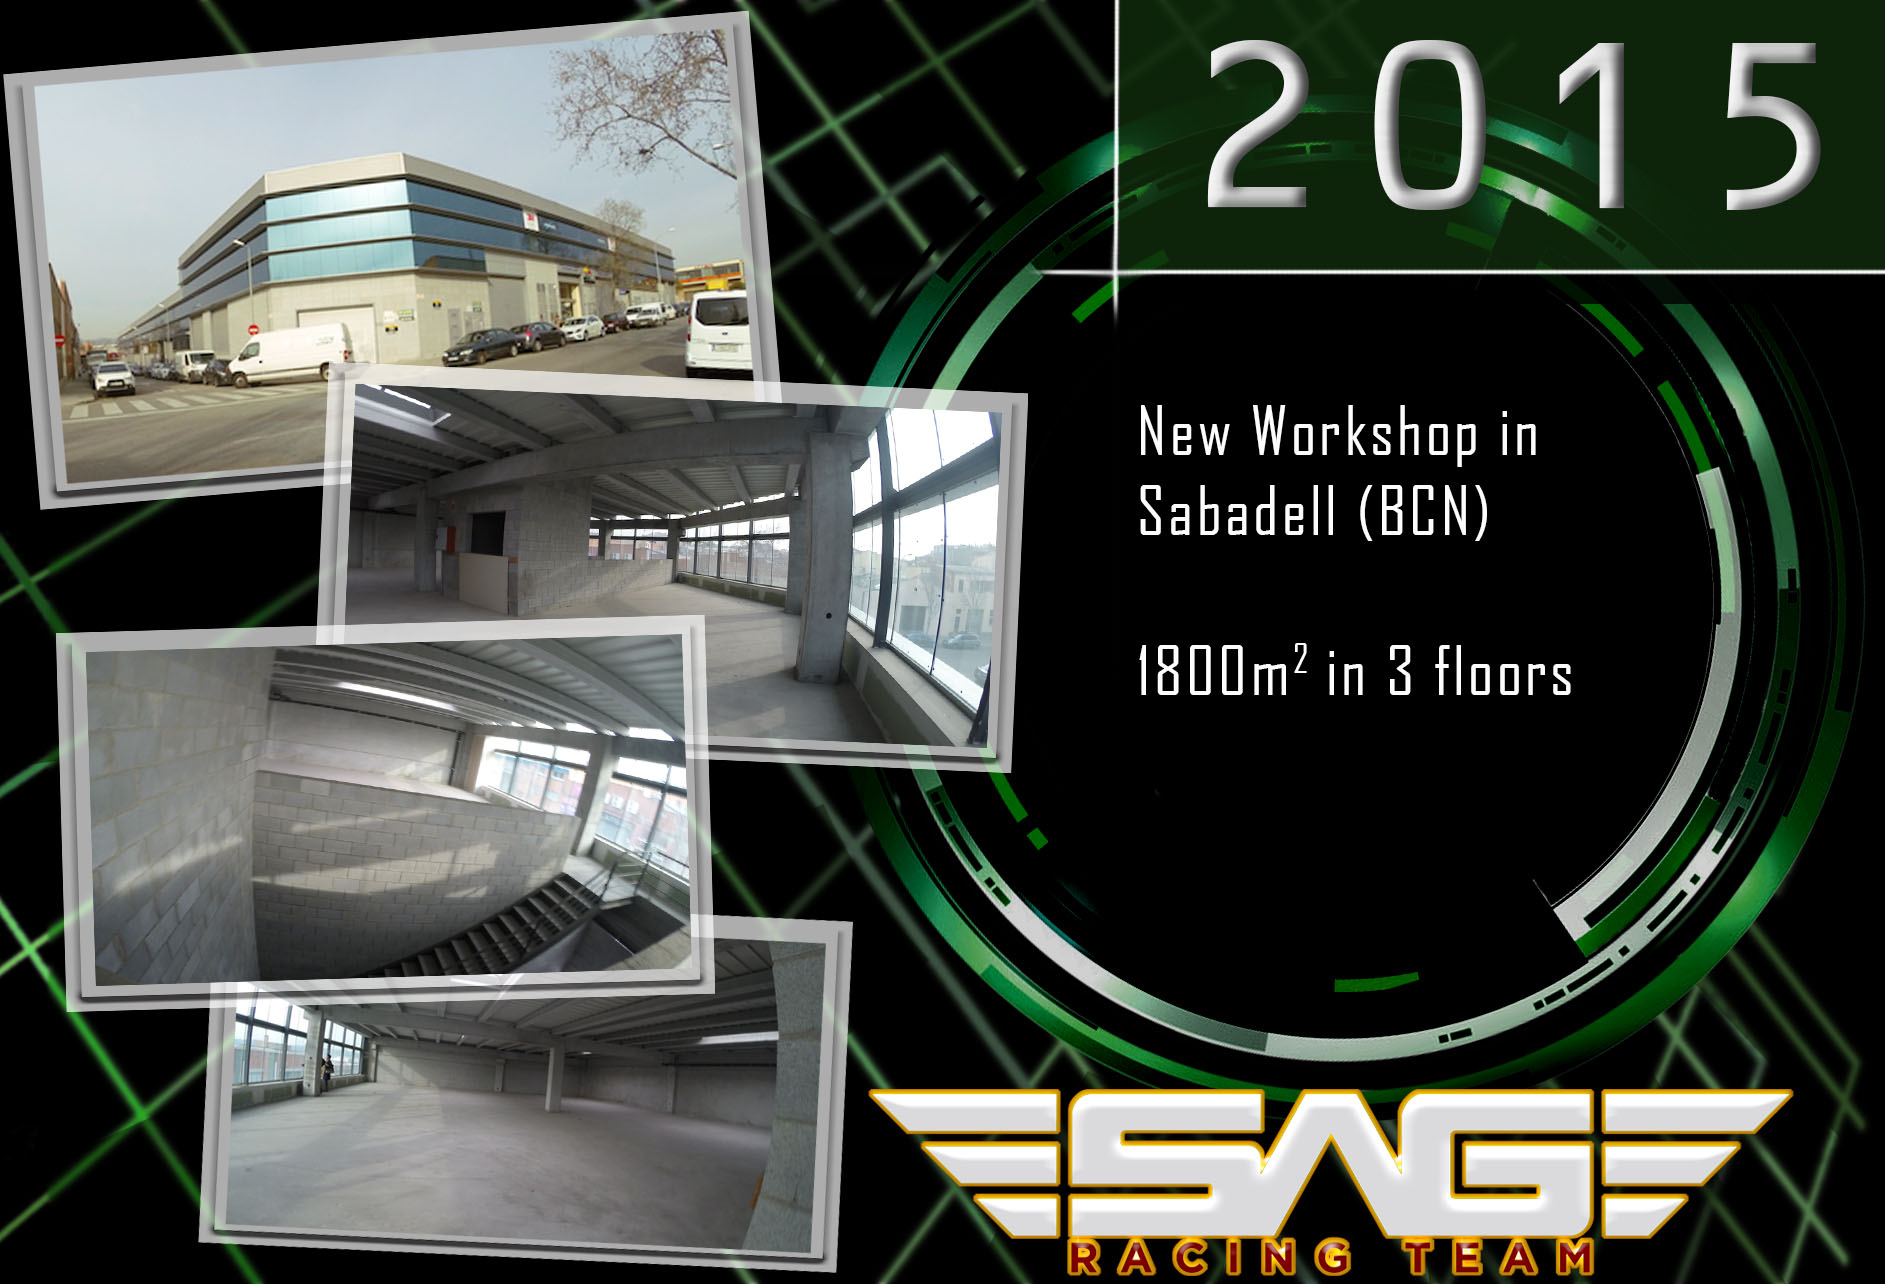 New Workshop